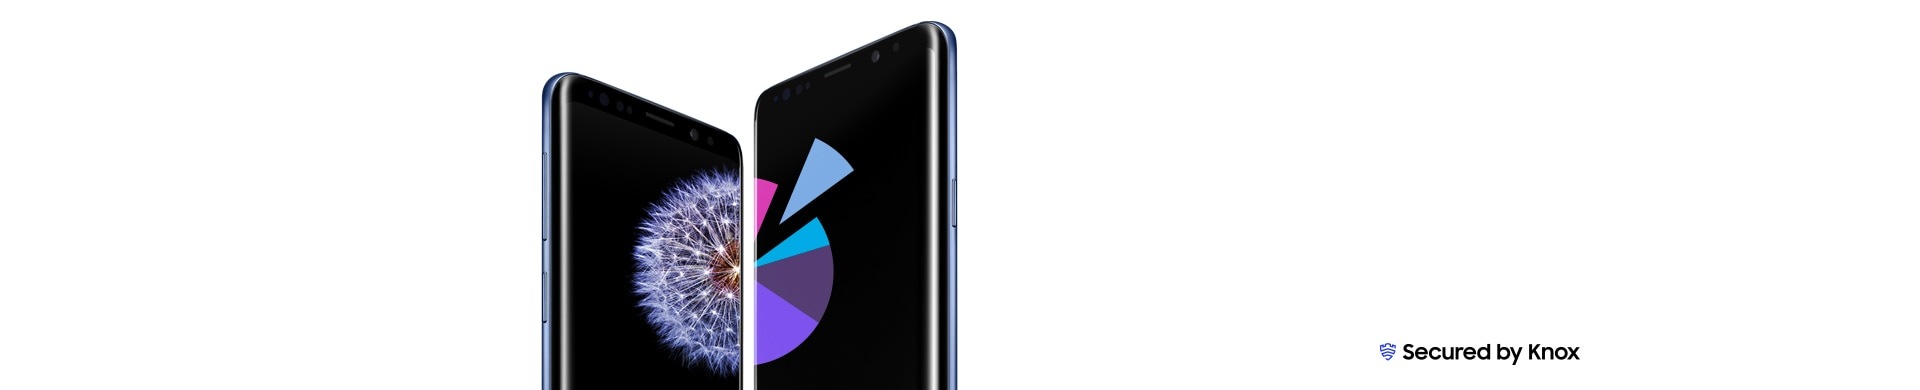 Galaxy S9 and S9+ standing, angled towards each other. Galaxy S9 has the dandelion wallpaper on-screen while Galaxy S9+ displays a pie chart